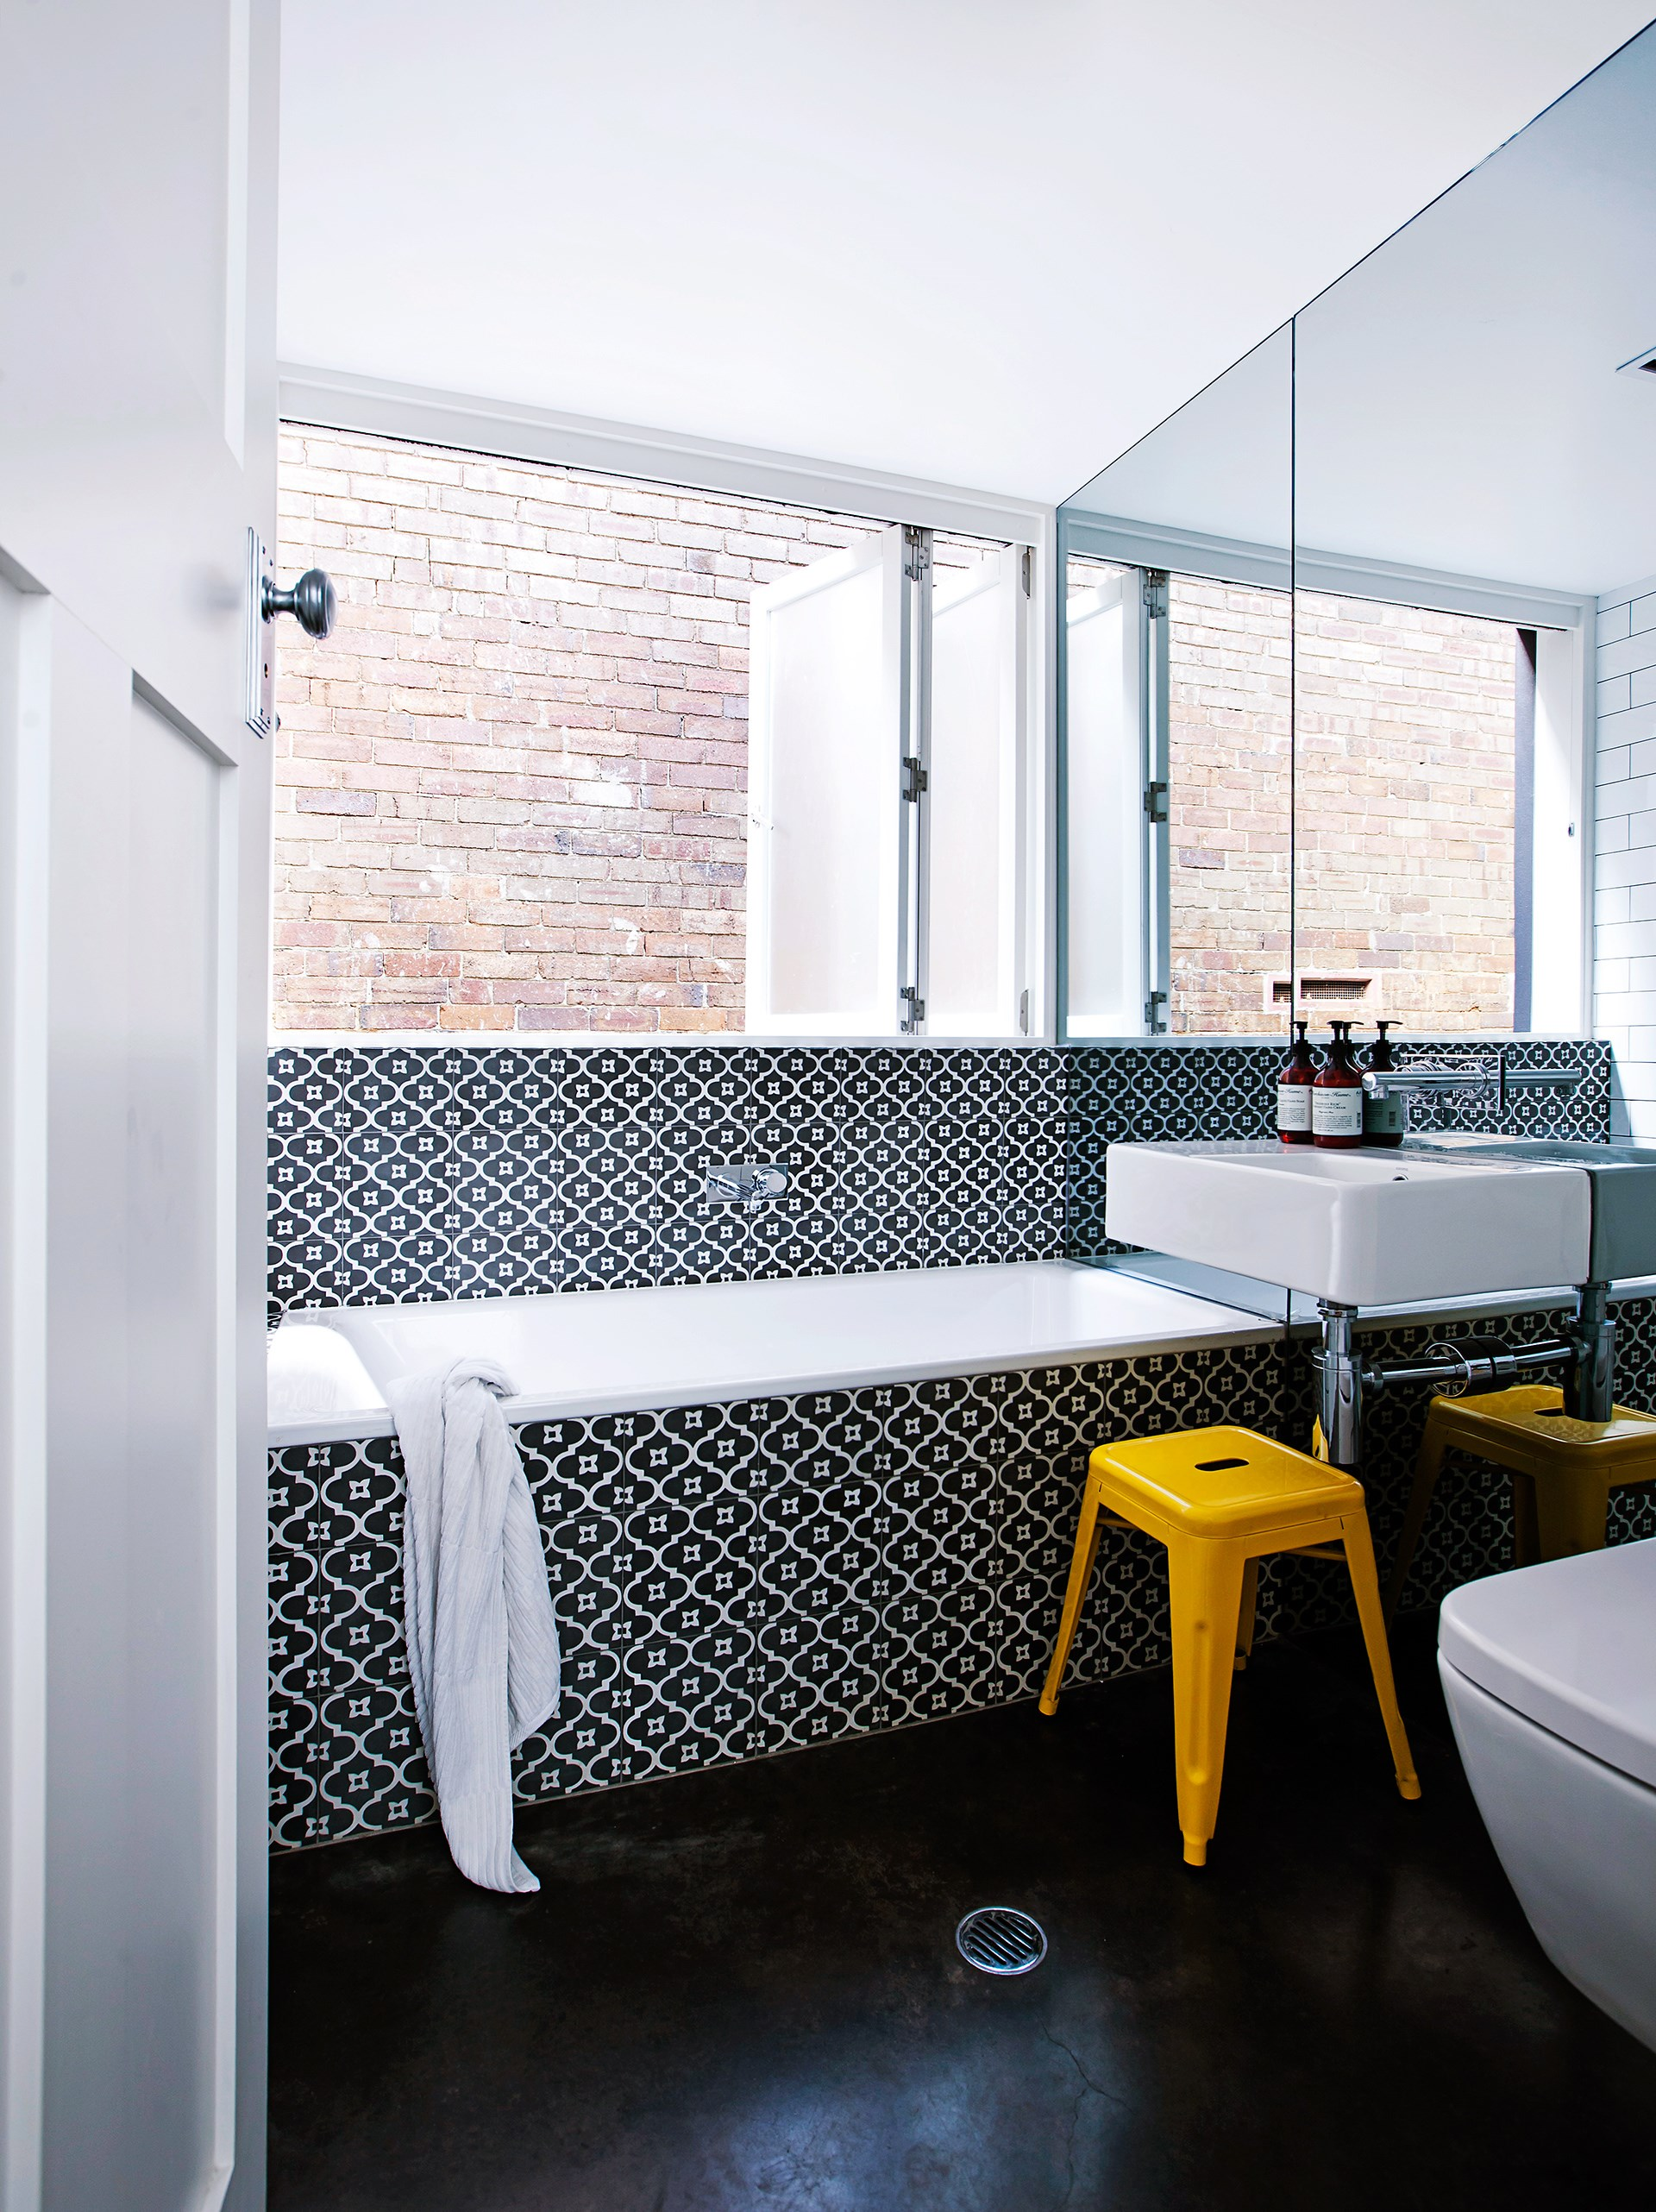 This bold bathroom contrasts with the all-white interior of this [renovated Sydney workers cottage](http://www.homestolove.com.au/decorating-with-white-sydney-workers-cottage-reno-3576) making a statement with patterned tiles, a dark floor and a striking floor-to-ceiling mirror. Photo: Maree Homer